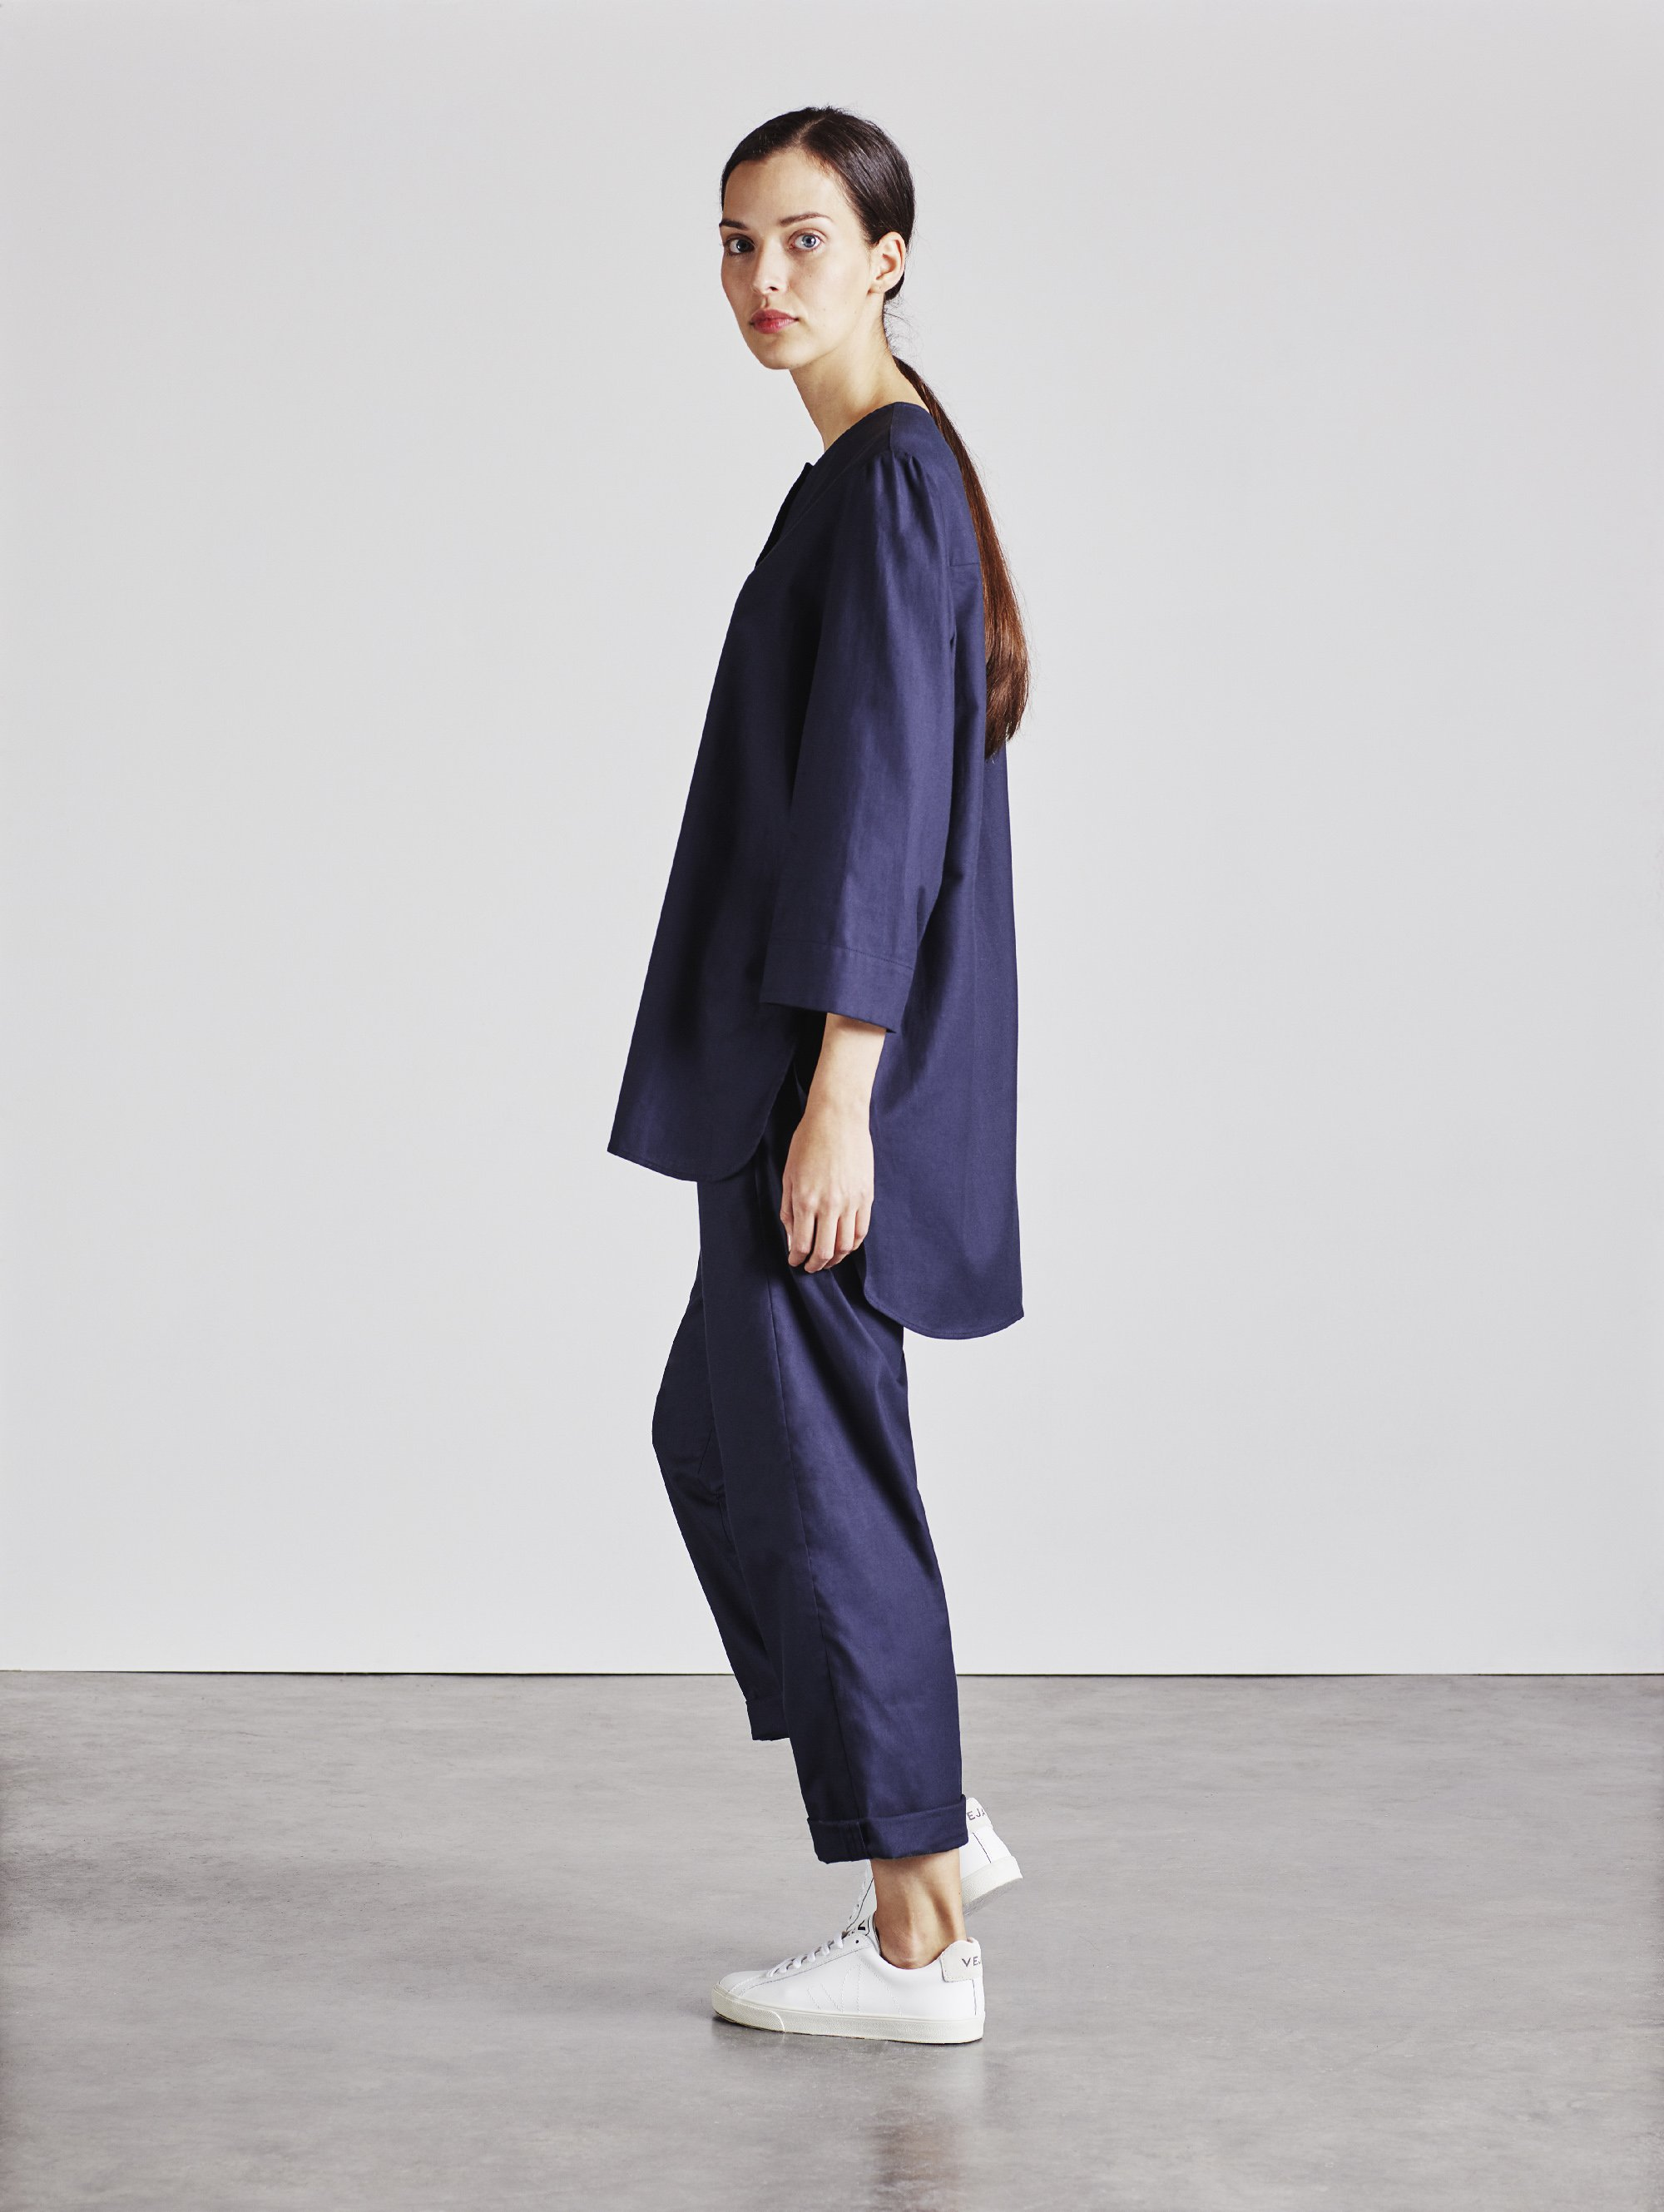 Soft organic twill Bethan Shirt by Alice Early